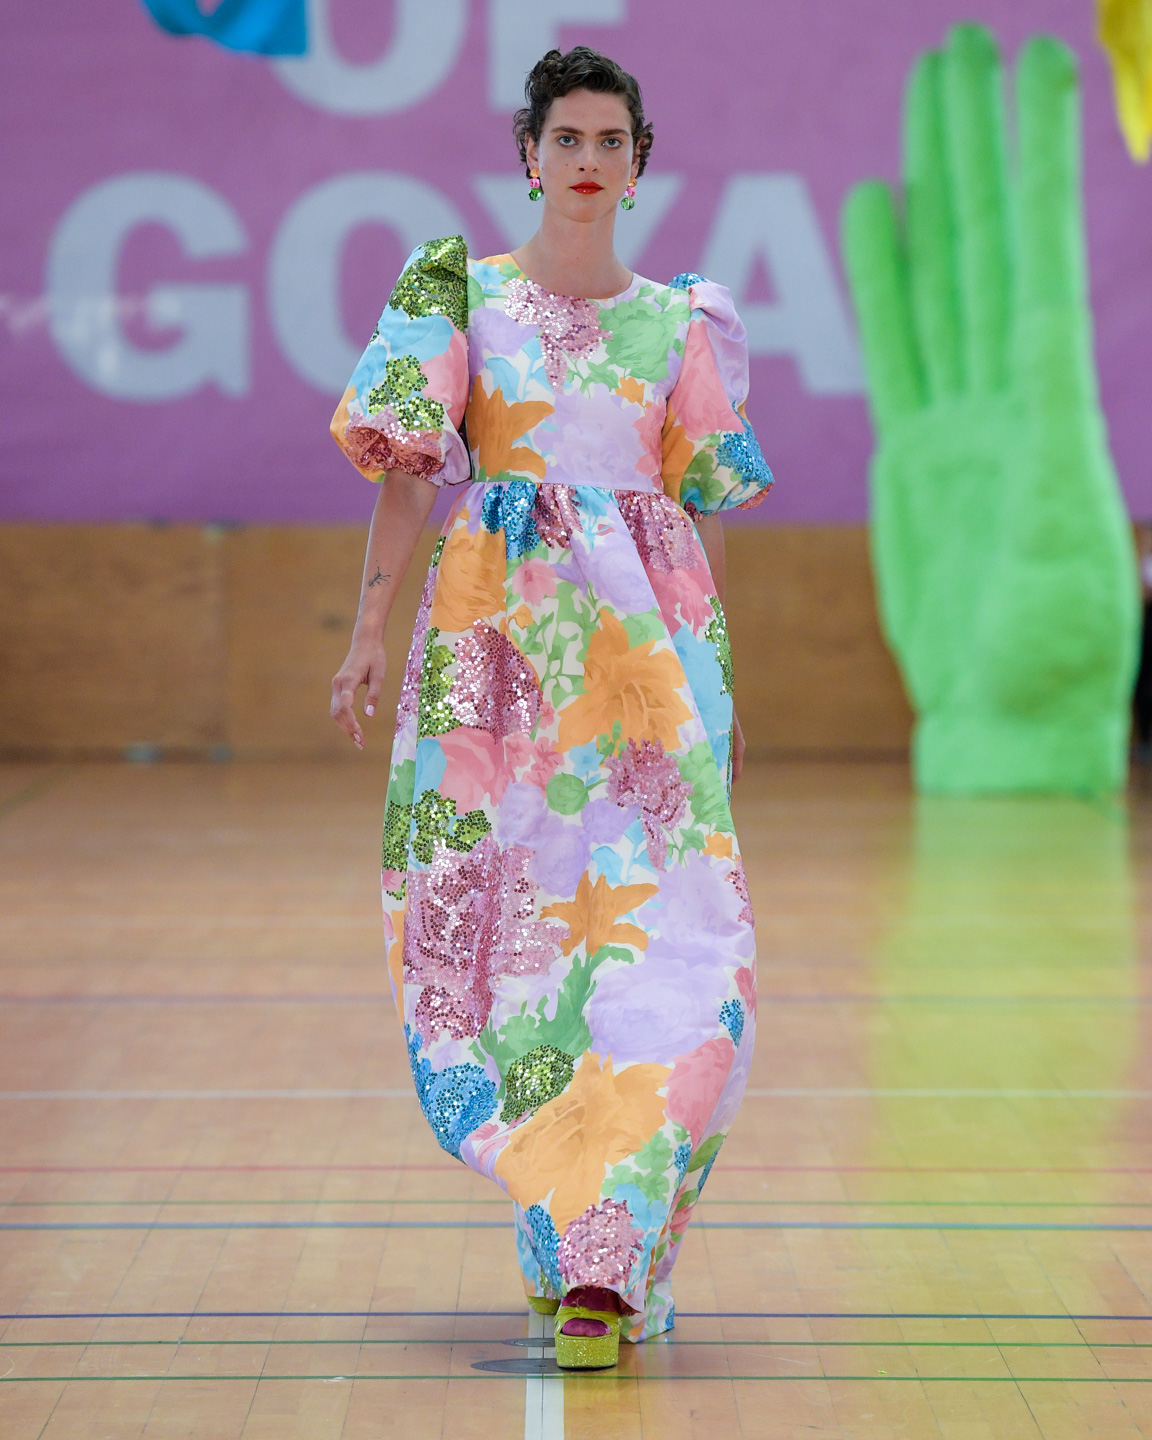 Stine goya, modeuge, fashionweek, fw, designer, design, mode, fashion, show, fashionshow, model, outfit, look, ss20